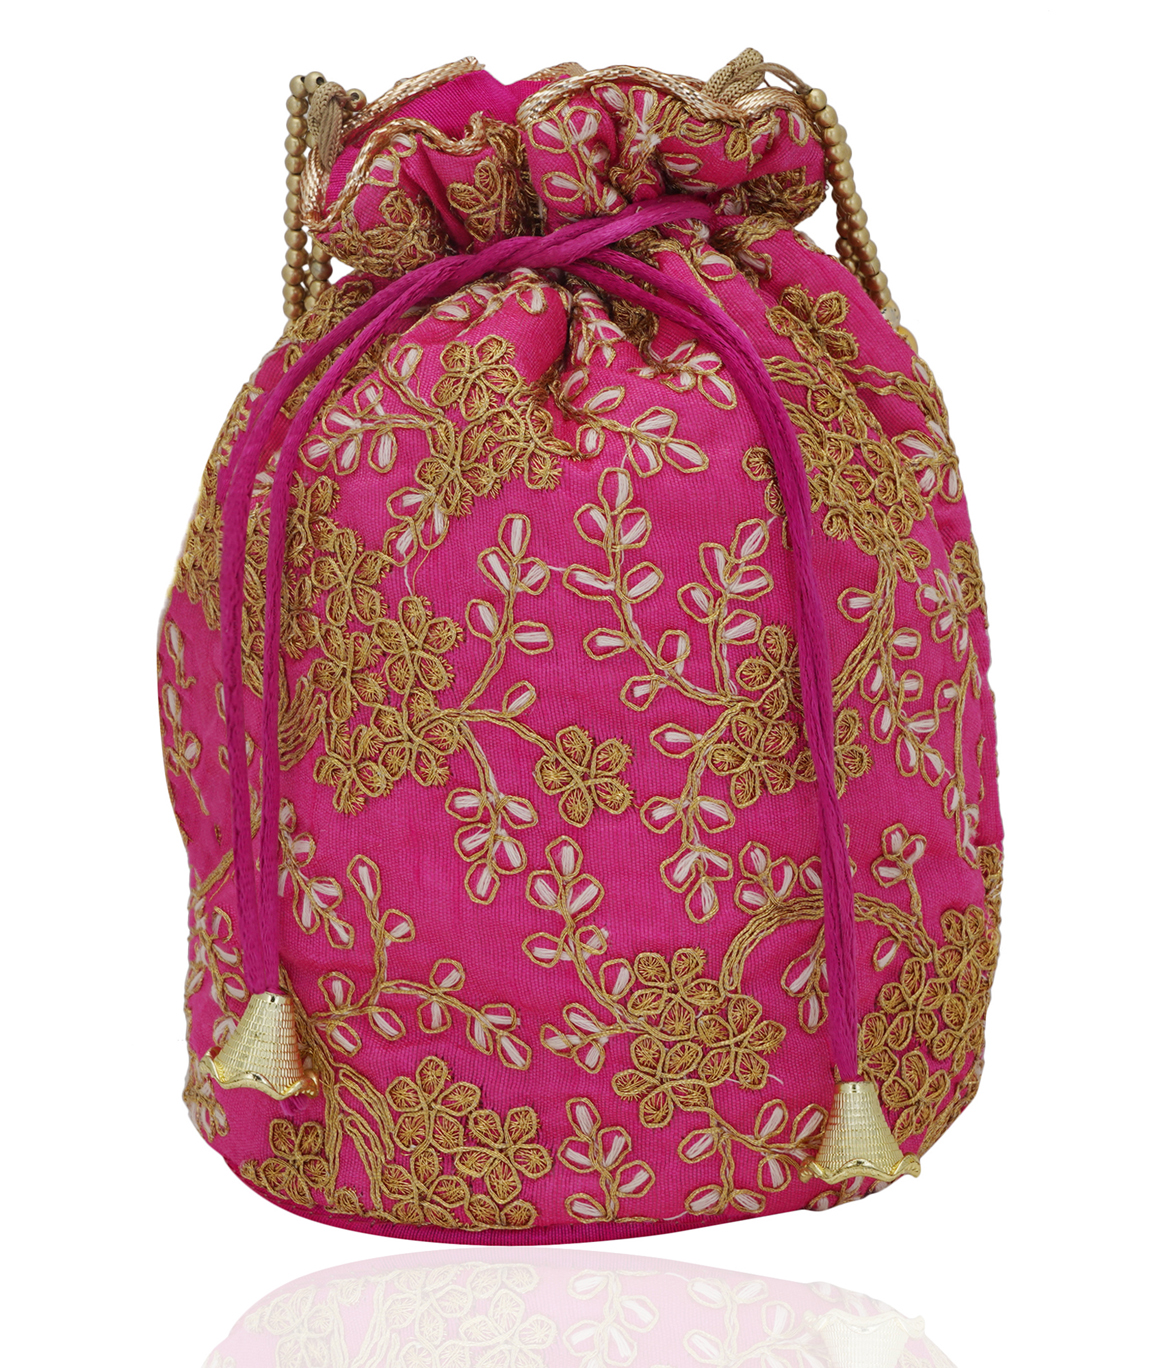 Pink Embroidered Potli Bag in Golden Zari and Beads(COLOUR : PINK)